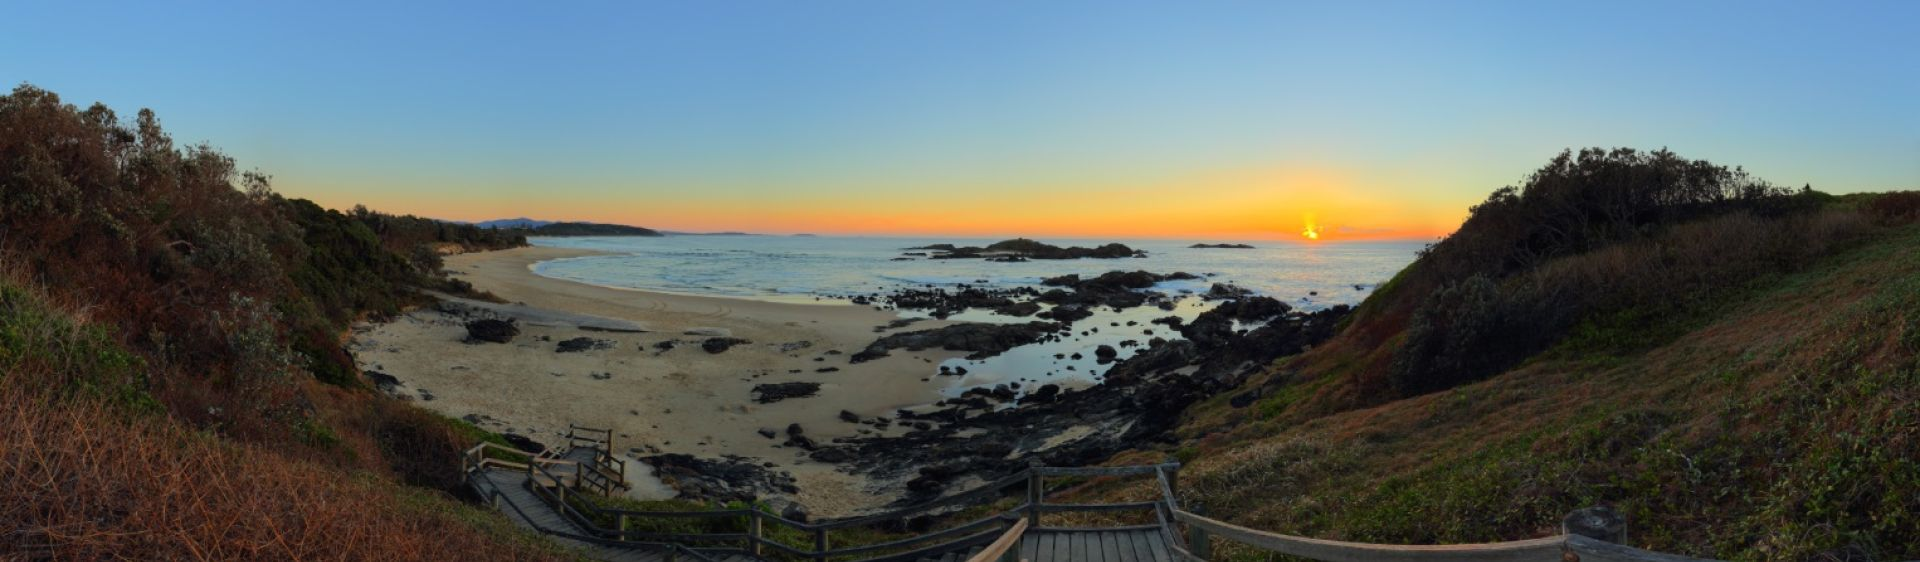 Sunrise in Sawtell - Coffs Coast